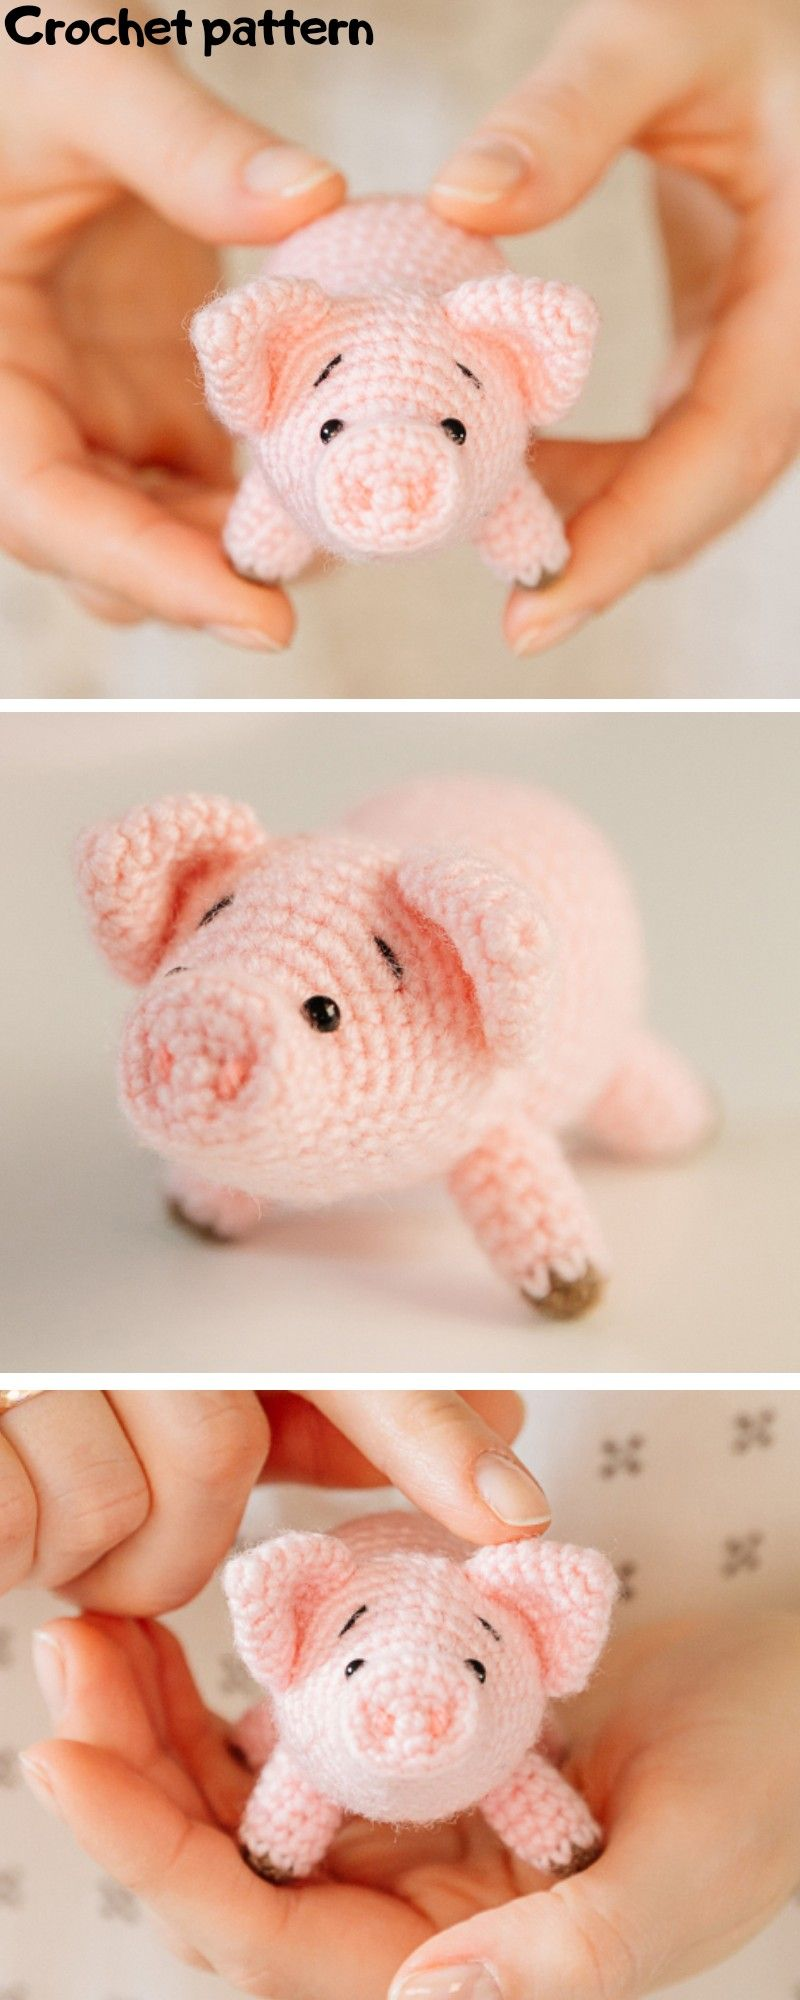 Mini Amigurumi Pig - A Free Crochet Pattern - Grace and Yarn | 2000x800